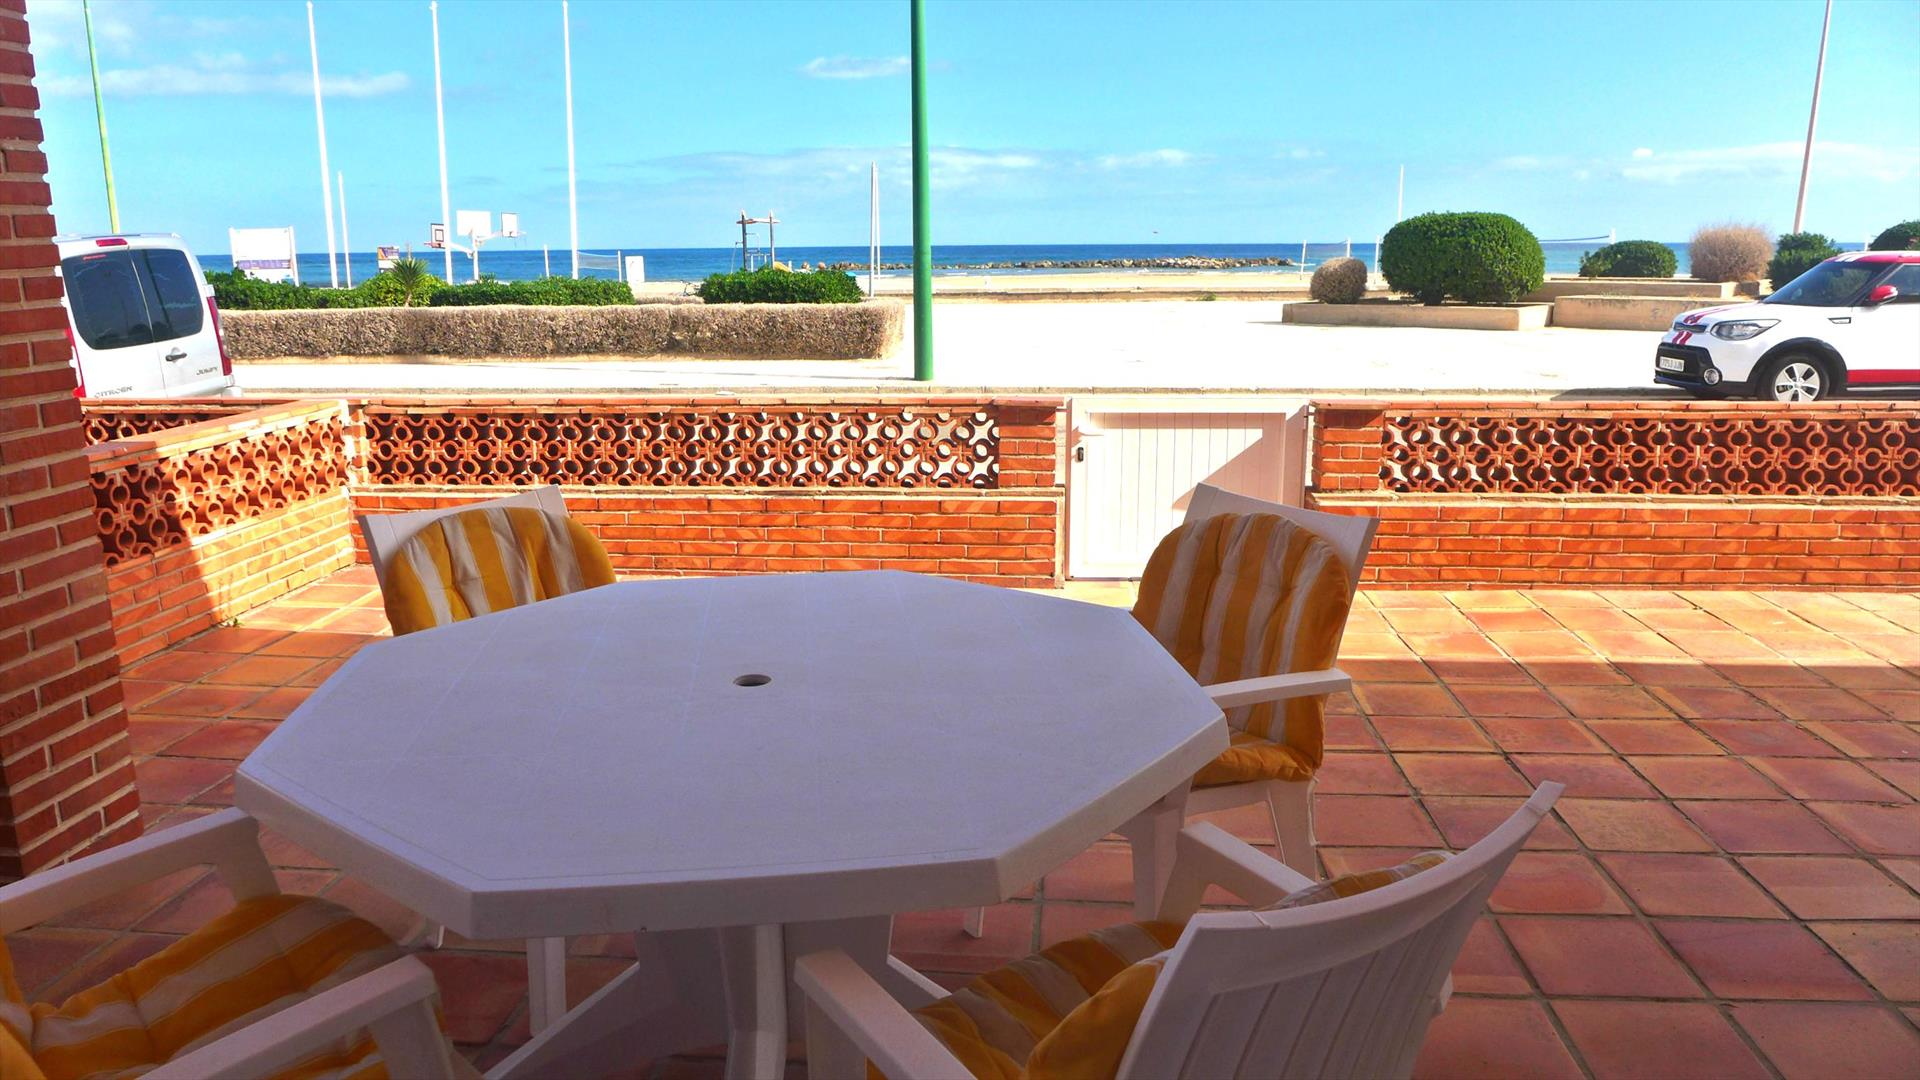 PB350, Lovely and cheerful holiday house in Oliva, on the Costa Blanca, Spain for 8 persons.....